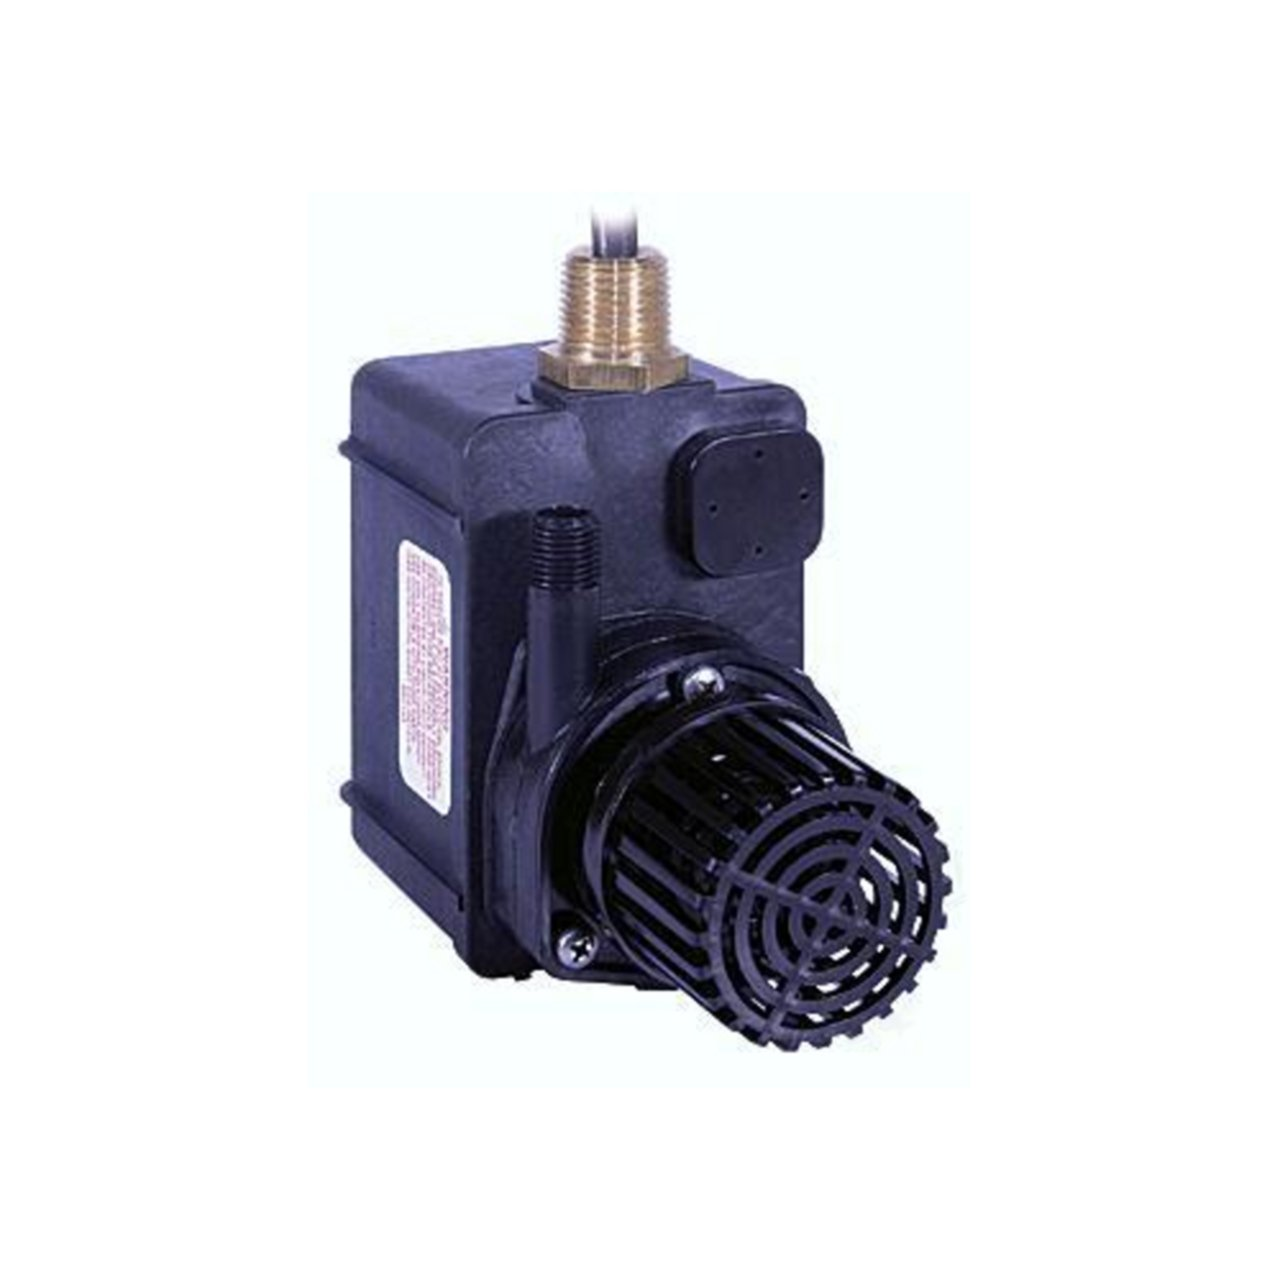 Little Giant 518550 Submersible Parts Washer Pump, Black by LITTLE GIANT